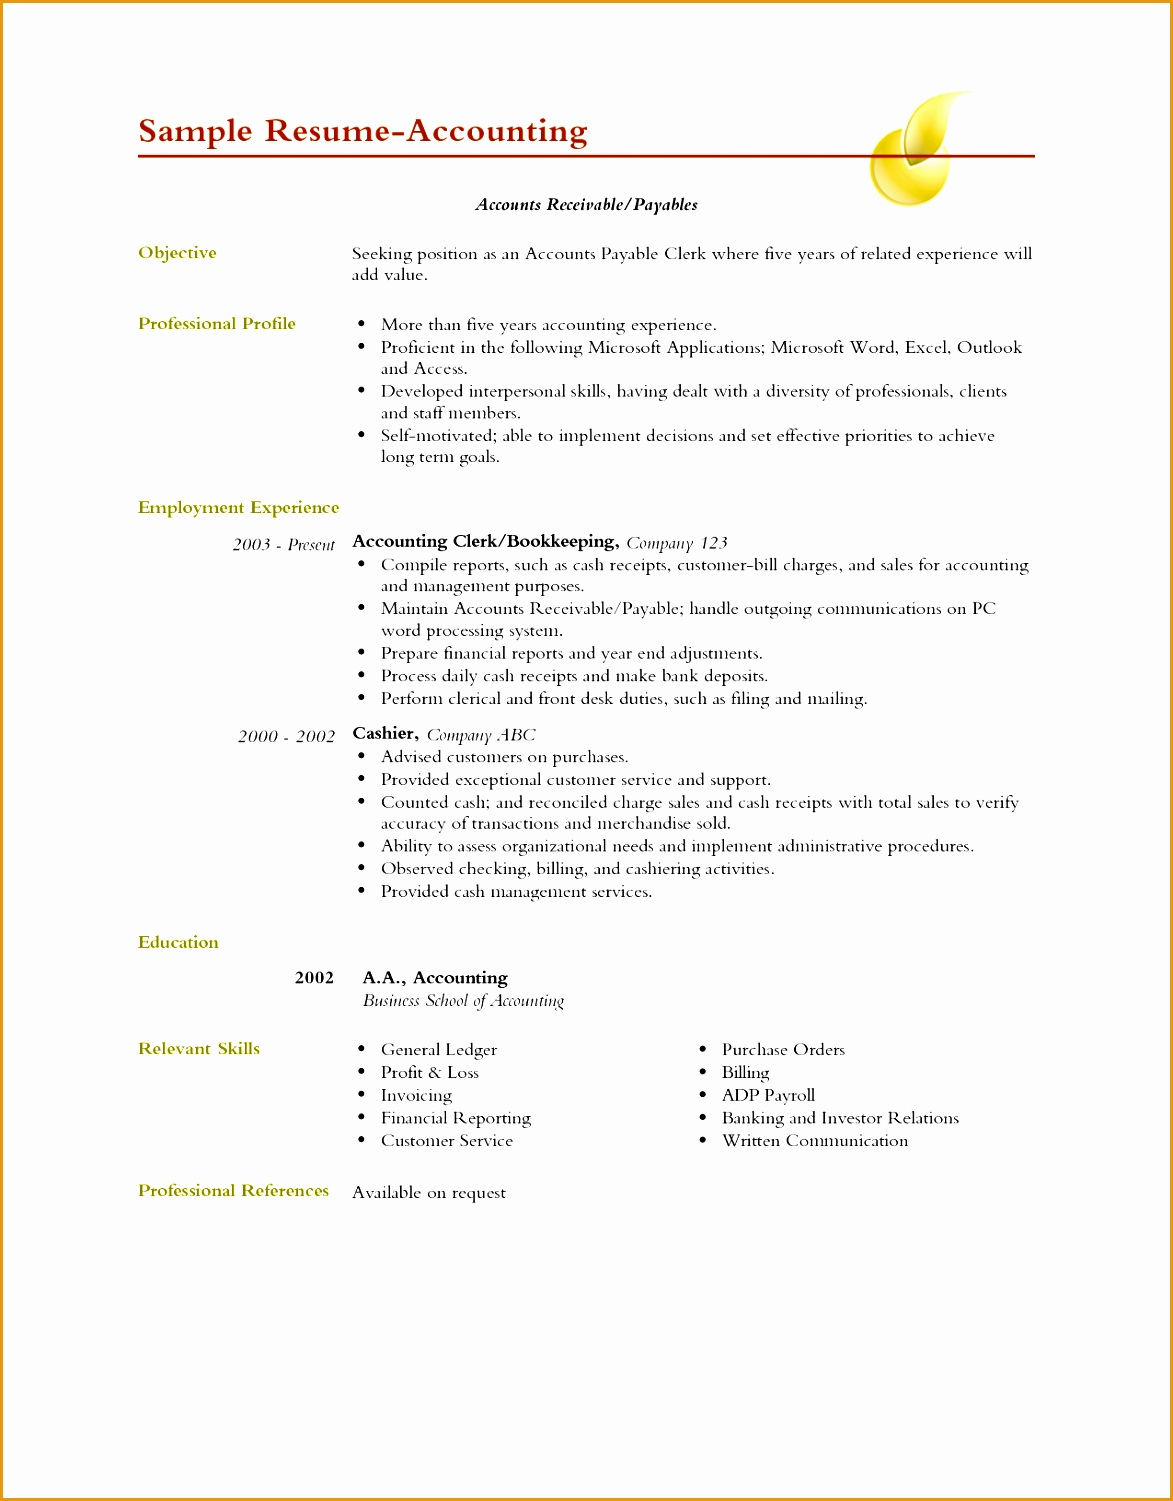 others professional profile accountant clerk resume with prepare financial reports and year end adjustments